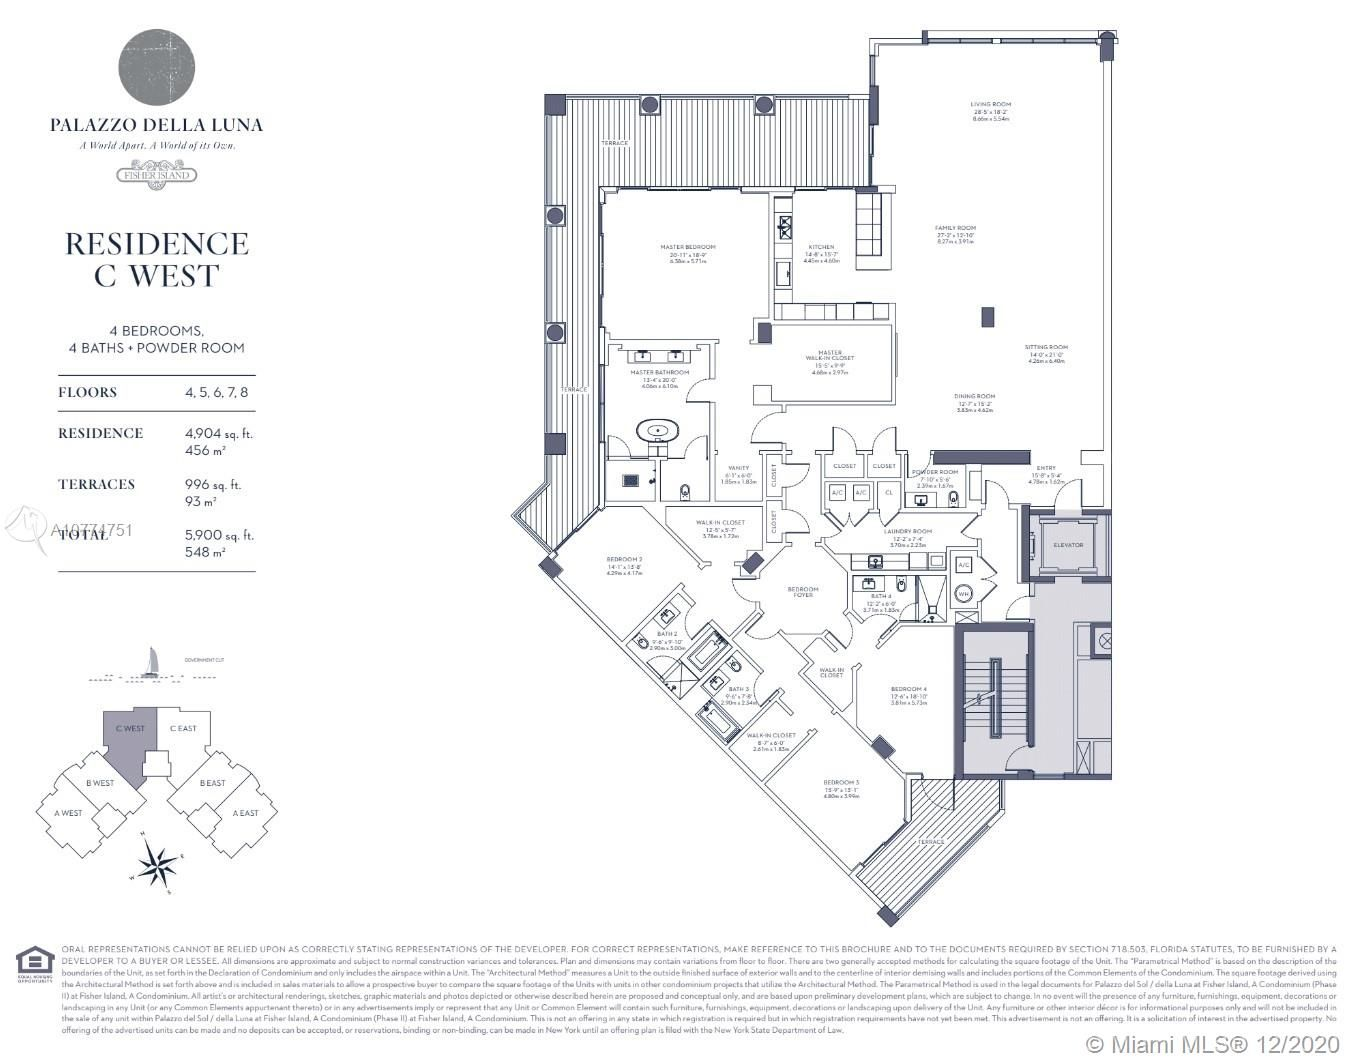 6883 Fisher Island Dr